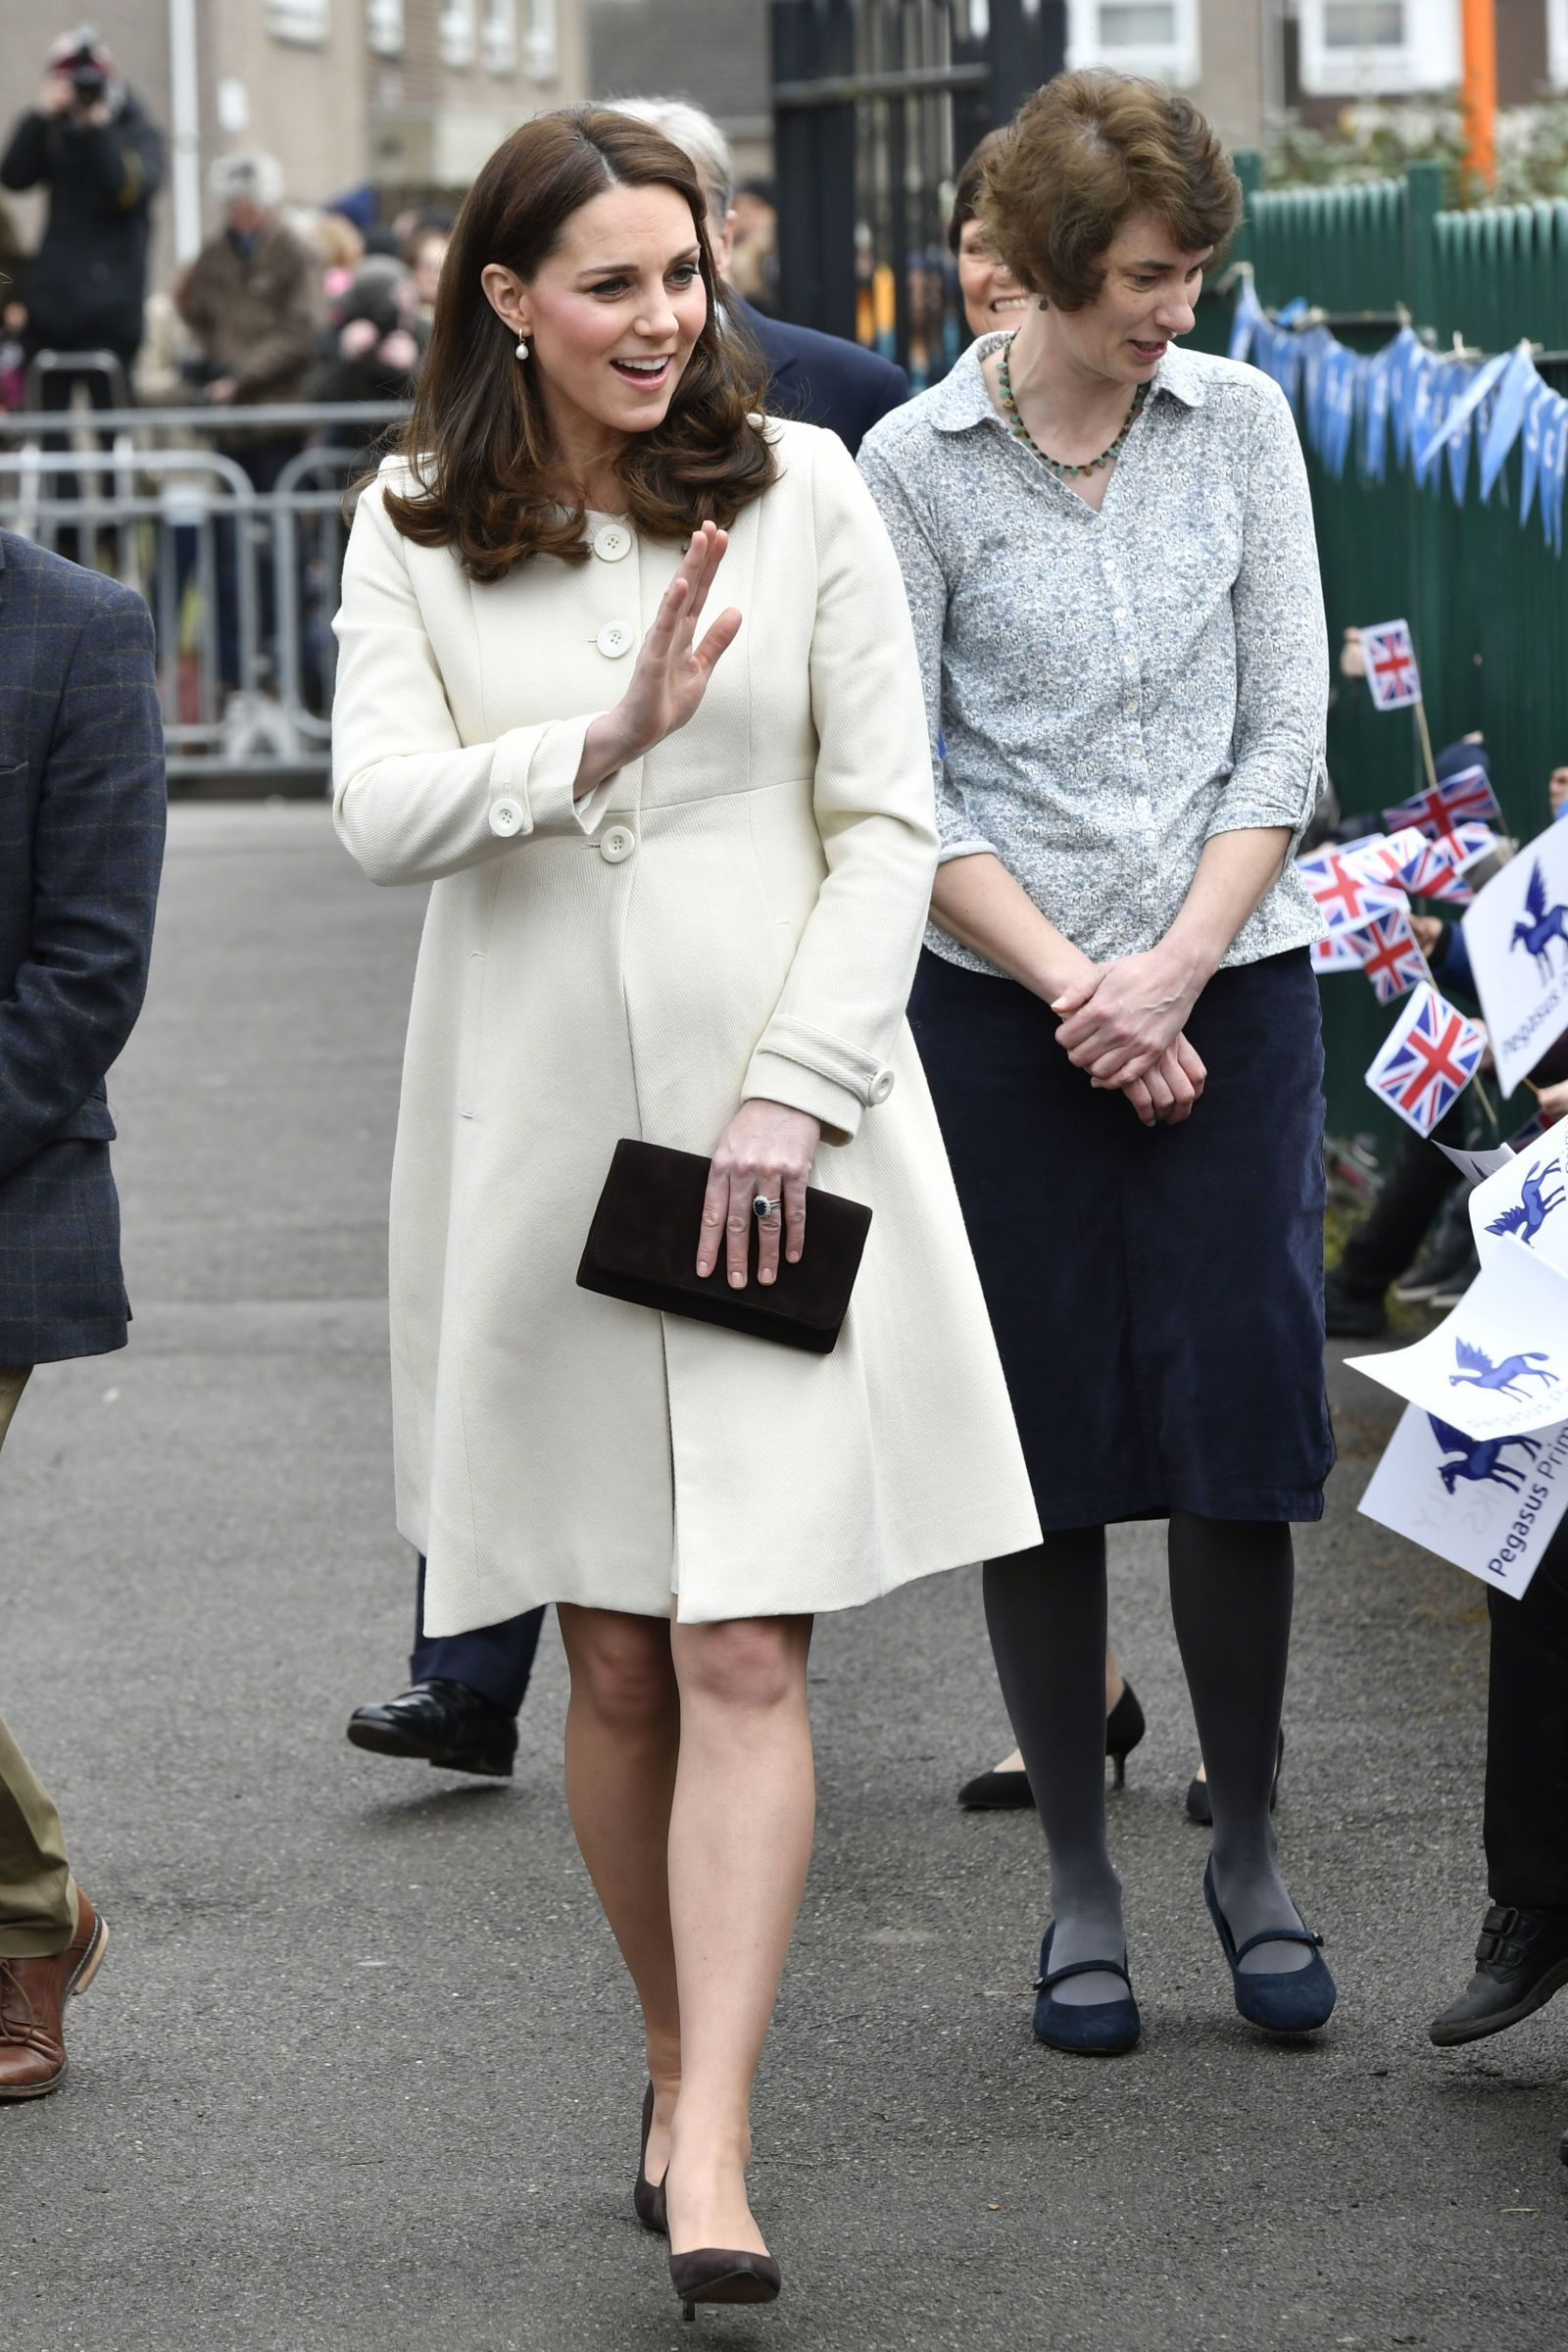 Kate Middleton Wears a Chic Gray Coat to Church with the Queen, as Prince George Goes on His First Grouse Shoot recommendations